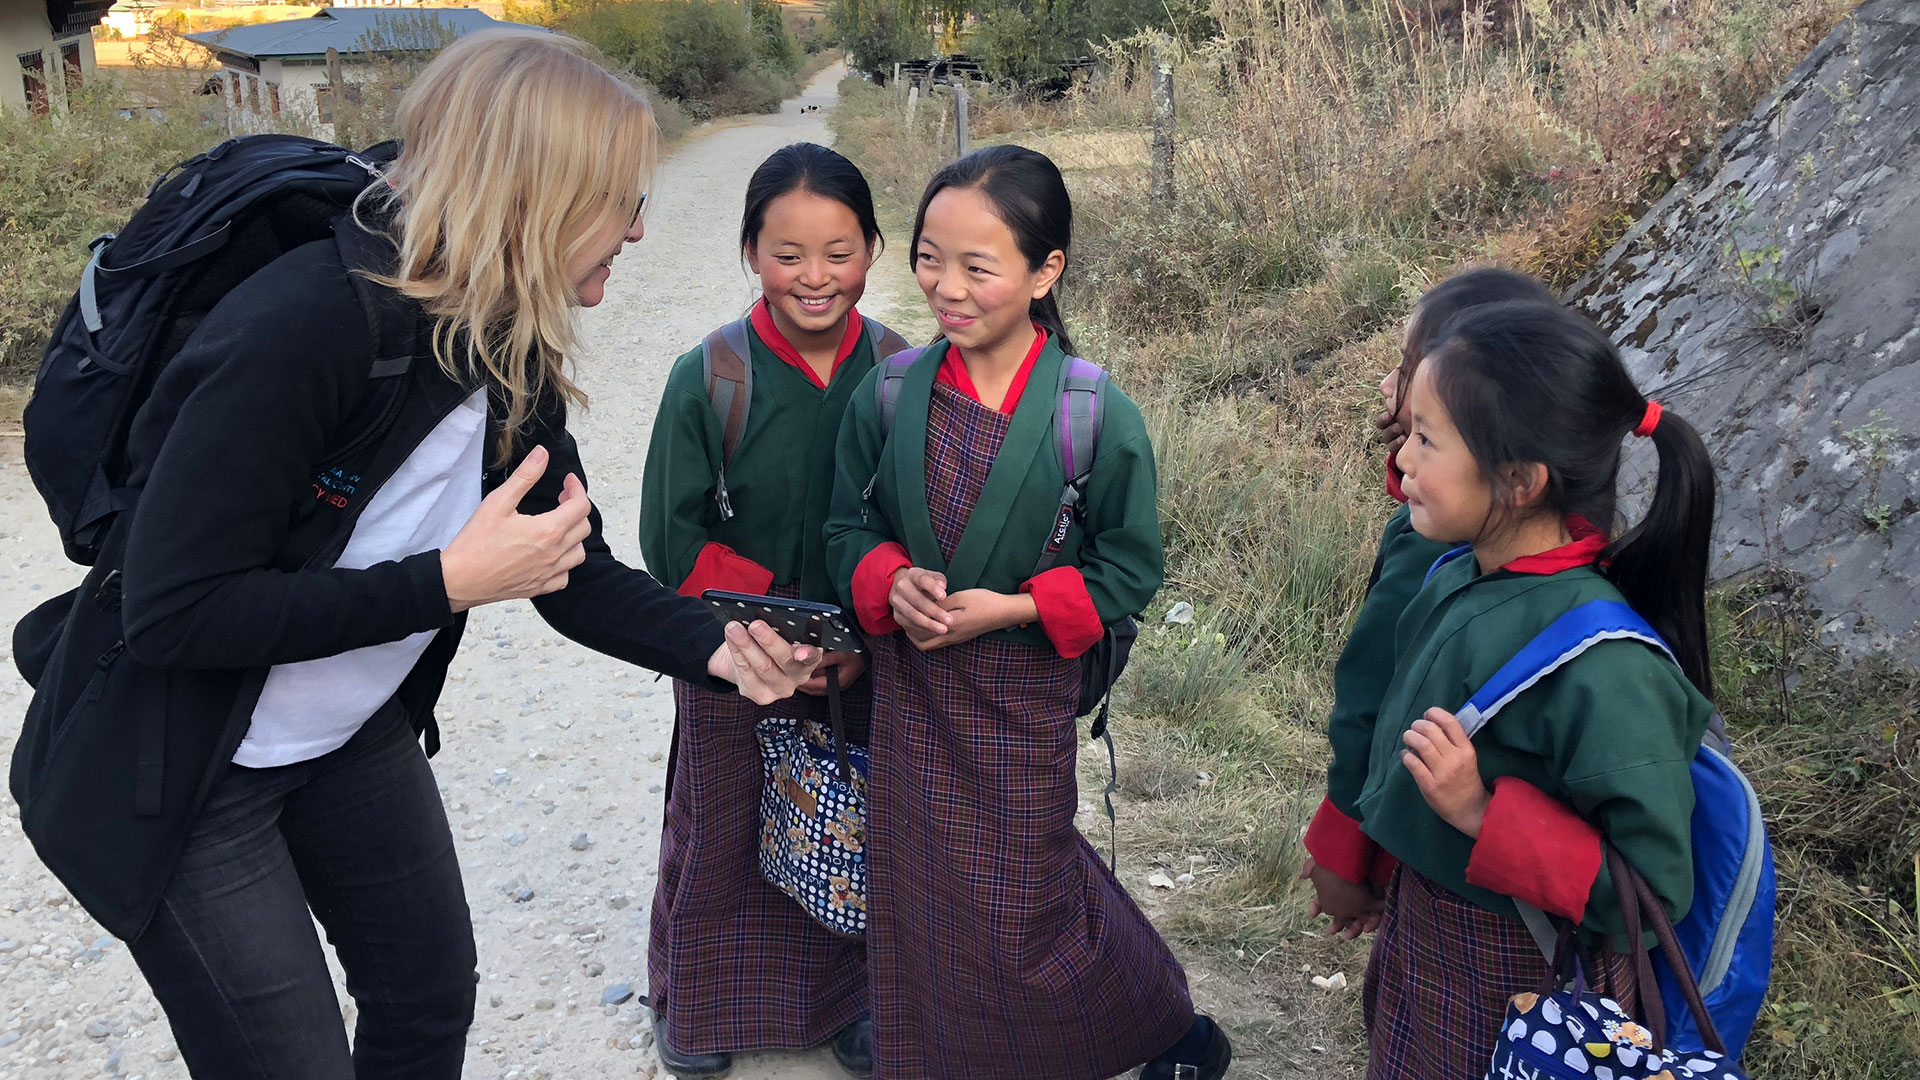 A woman interacts with local school girls in Bhutan